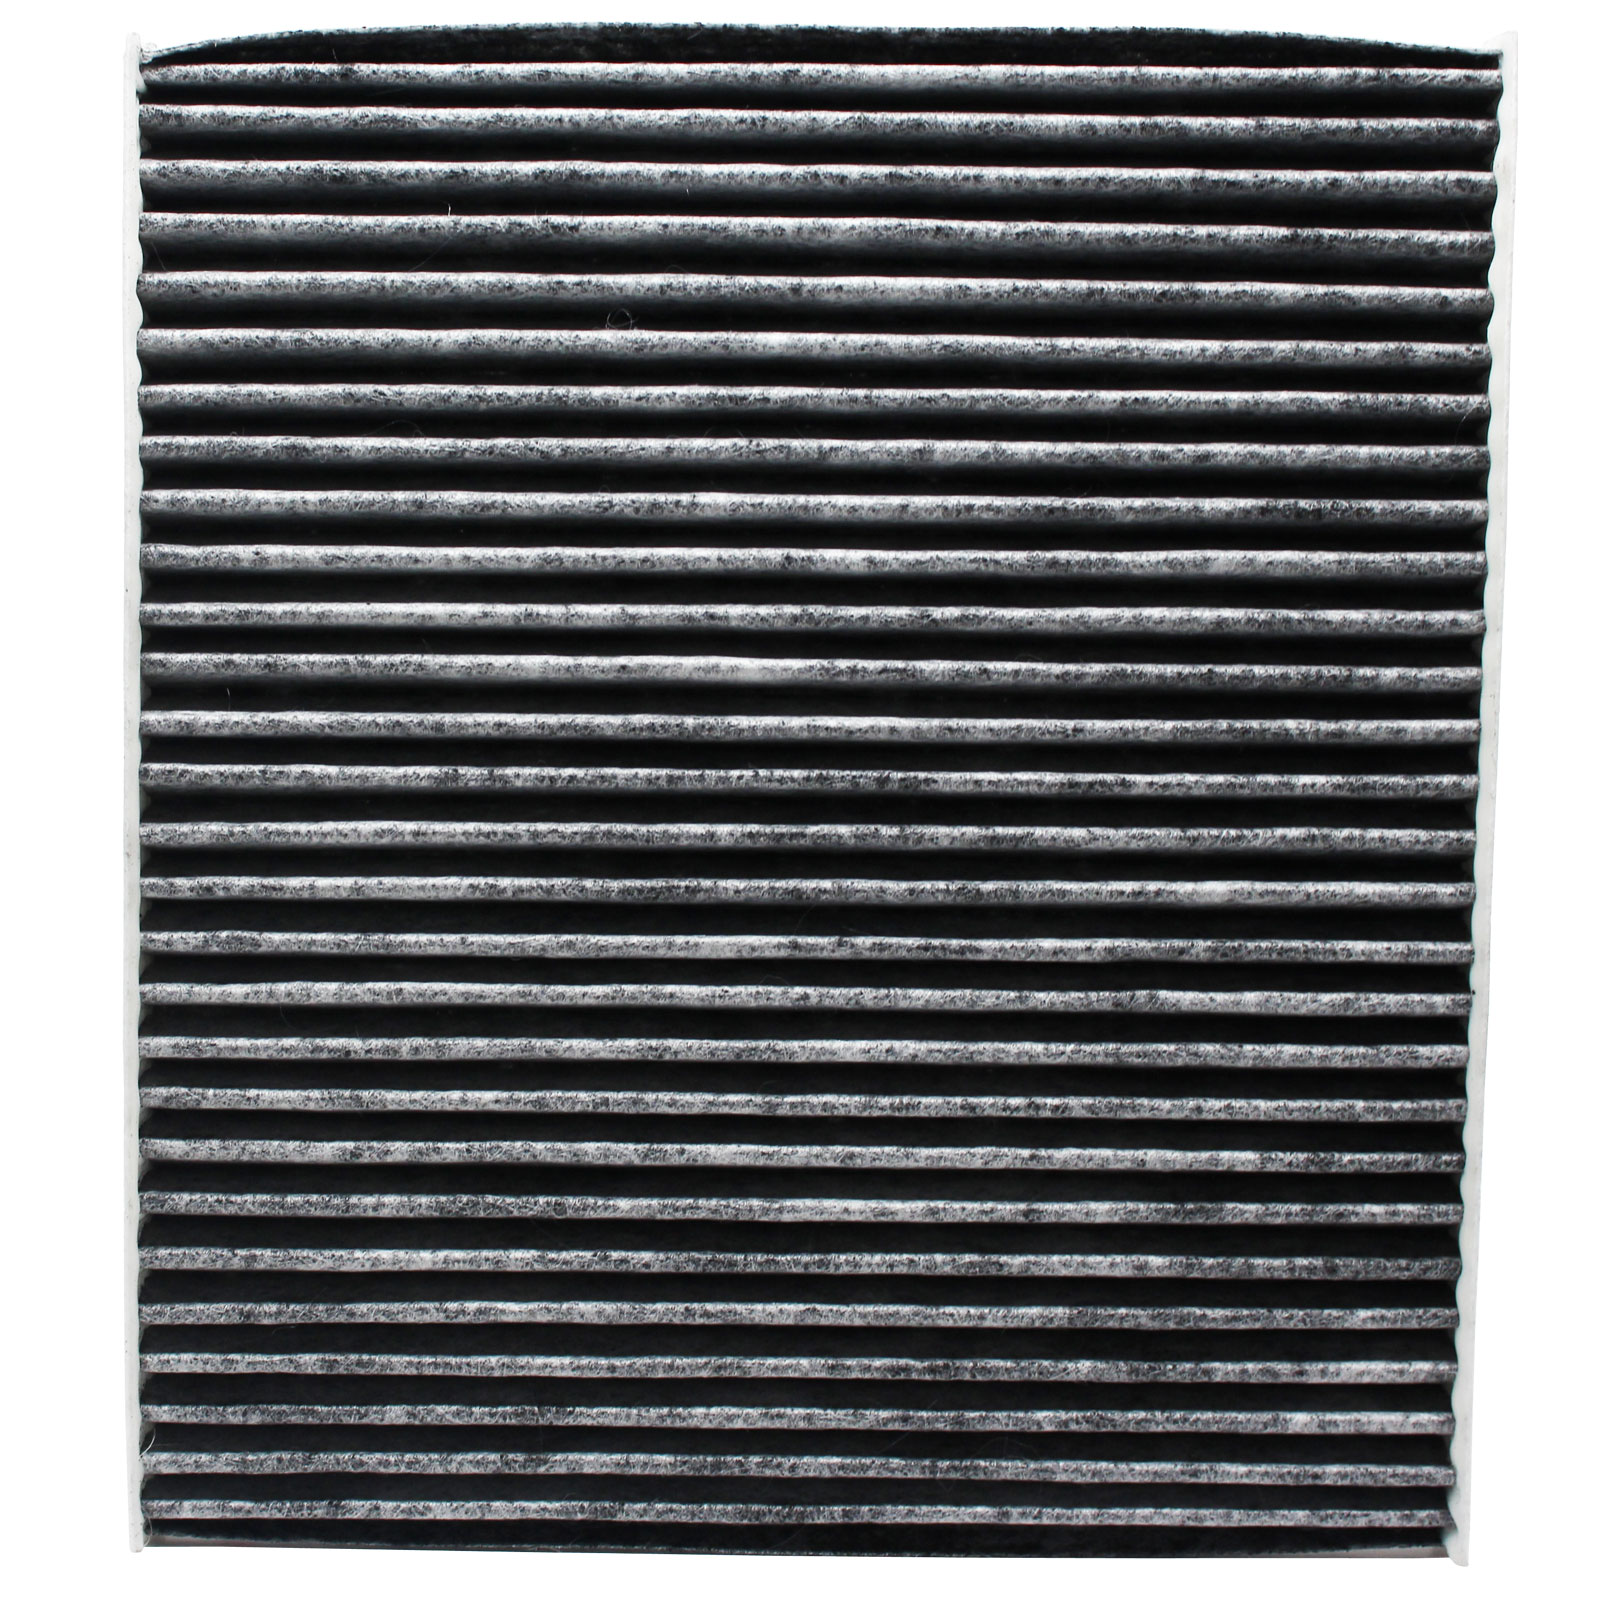 4-Pack Replacement Cabin Air Filter for KIA 97133-2E210 Car/Automotive - Activated Carbon, ACF-10709 - image 2 of 4